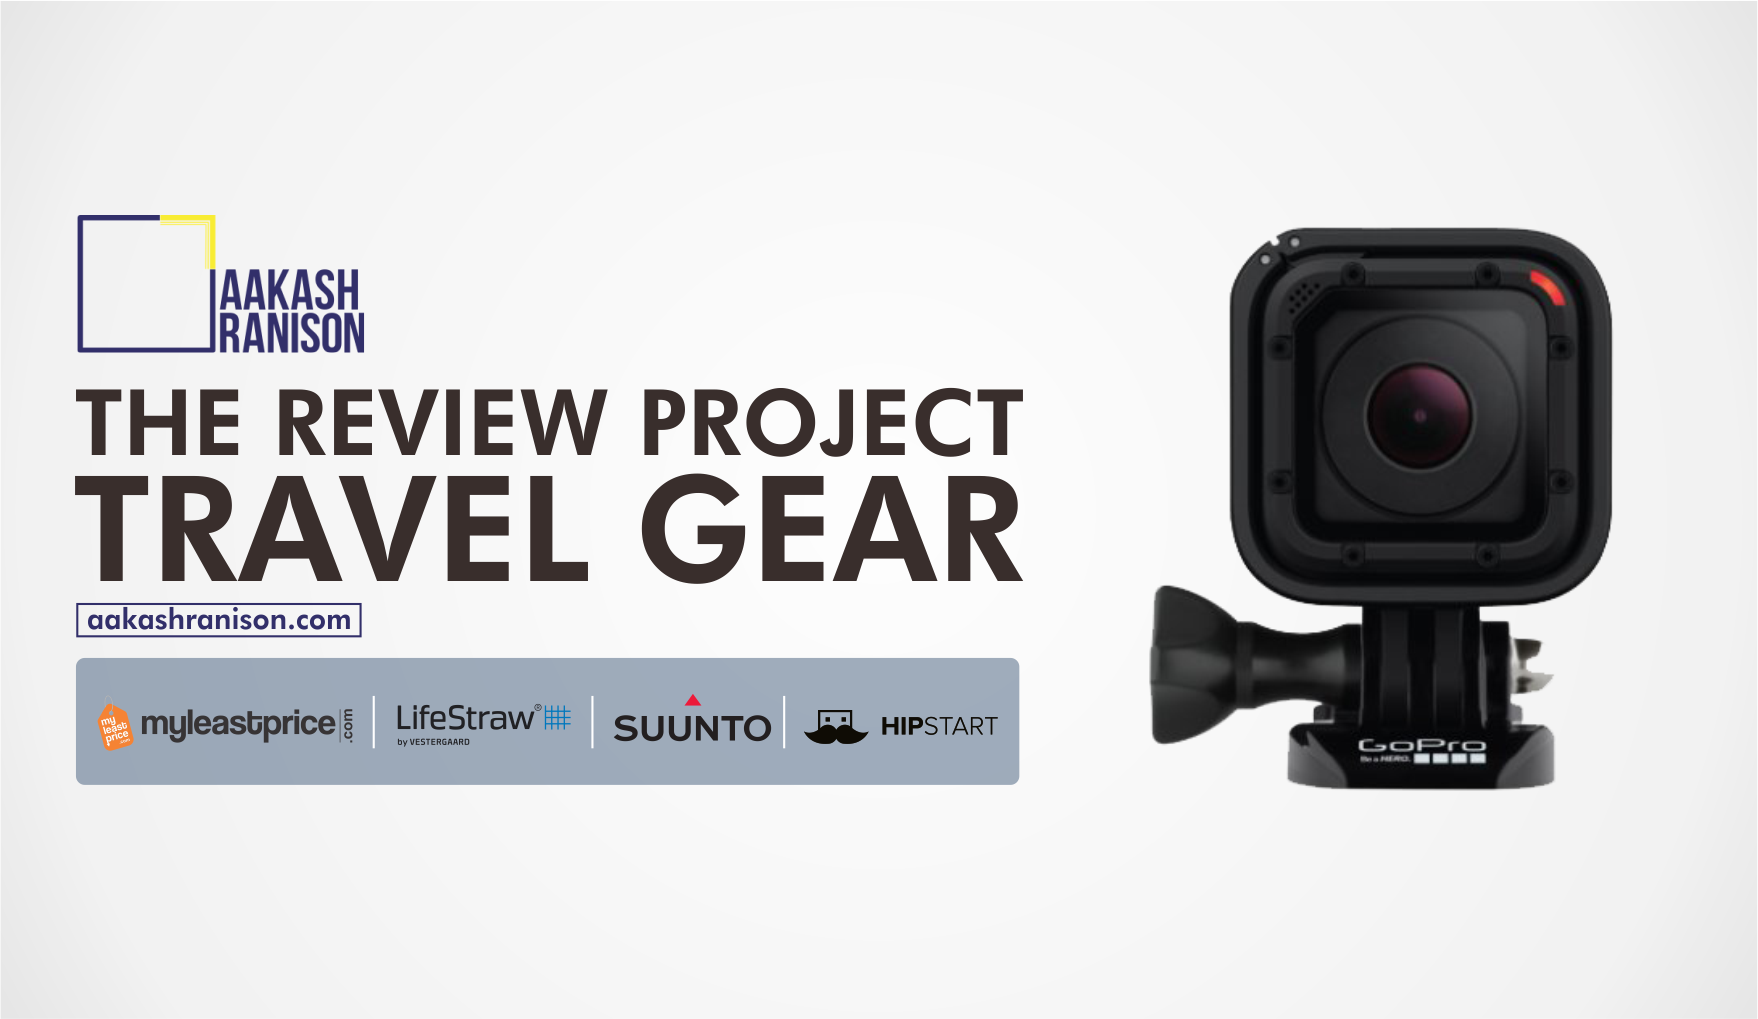 aakash-ranison-solo-indian-traveller-blogger-travel-gear-review-gopro-adventure-camera-session-hero4